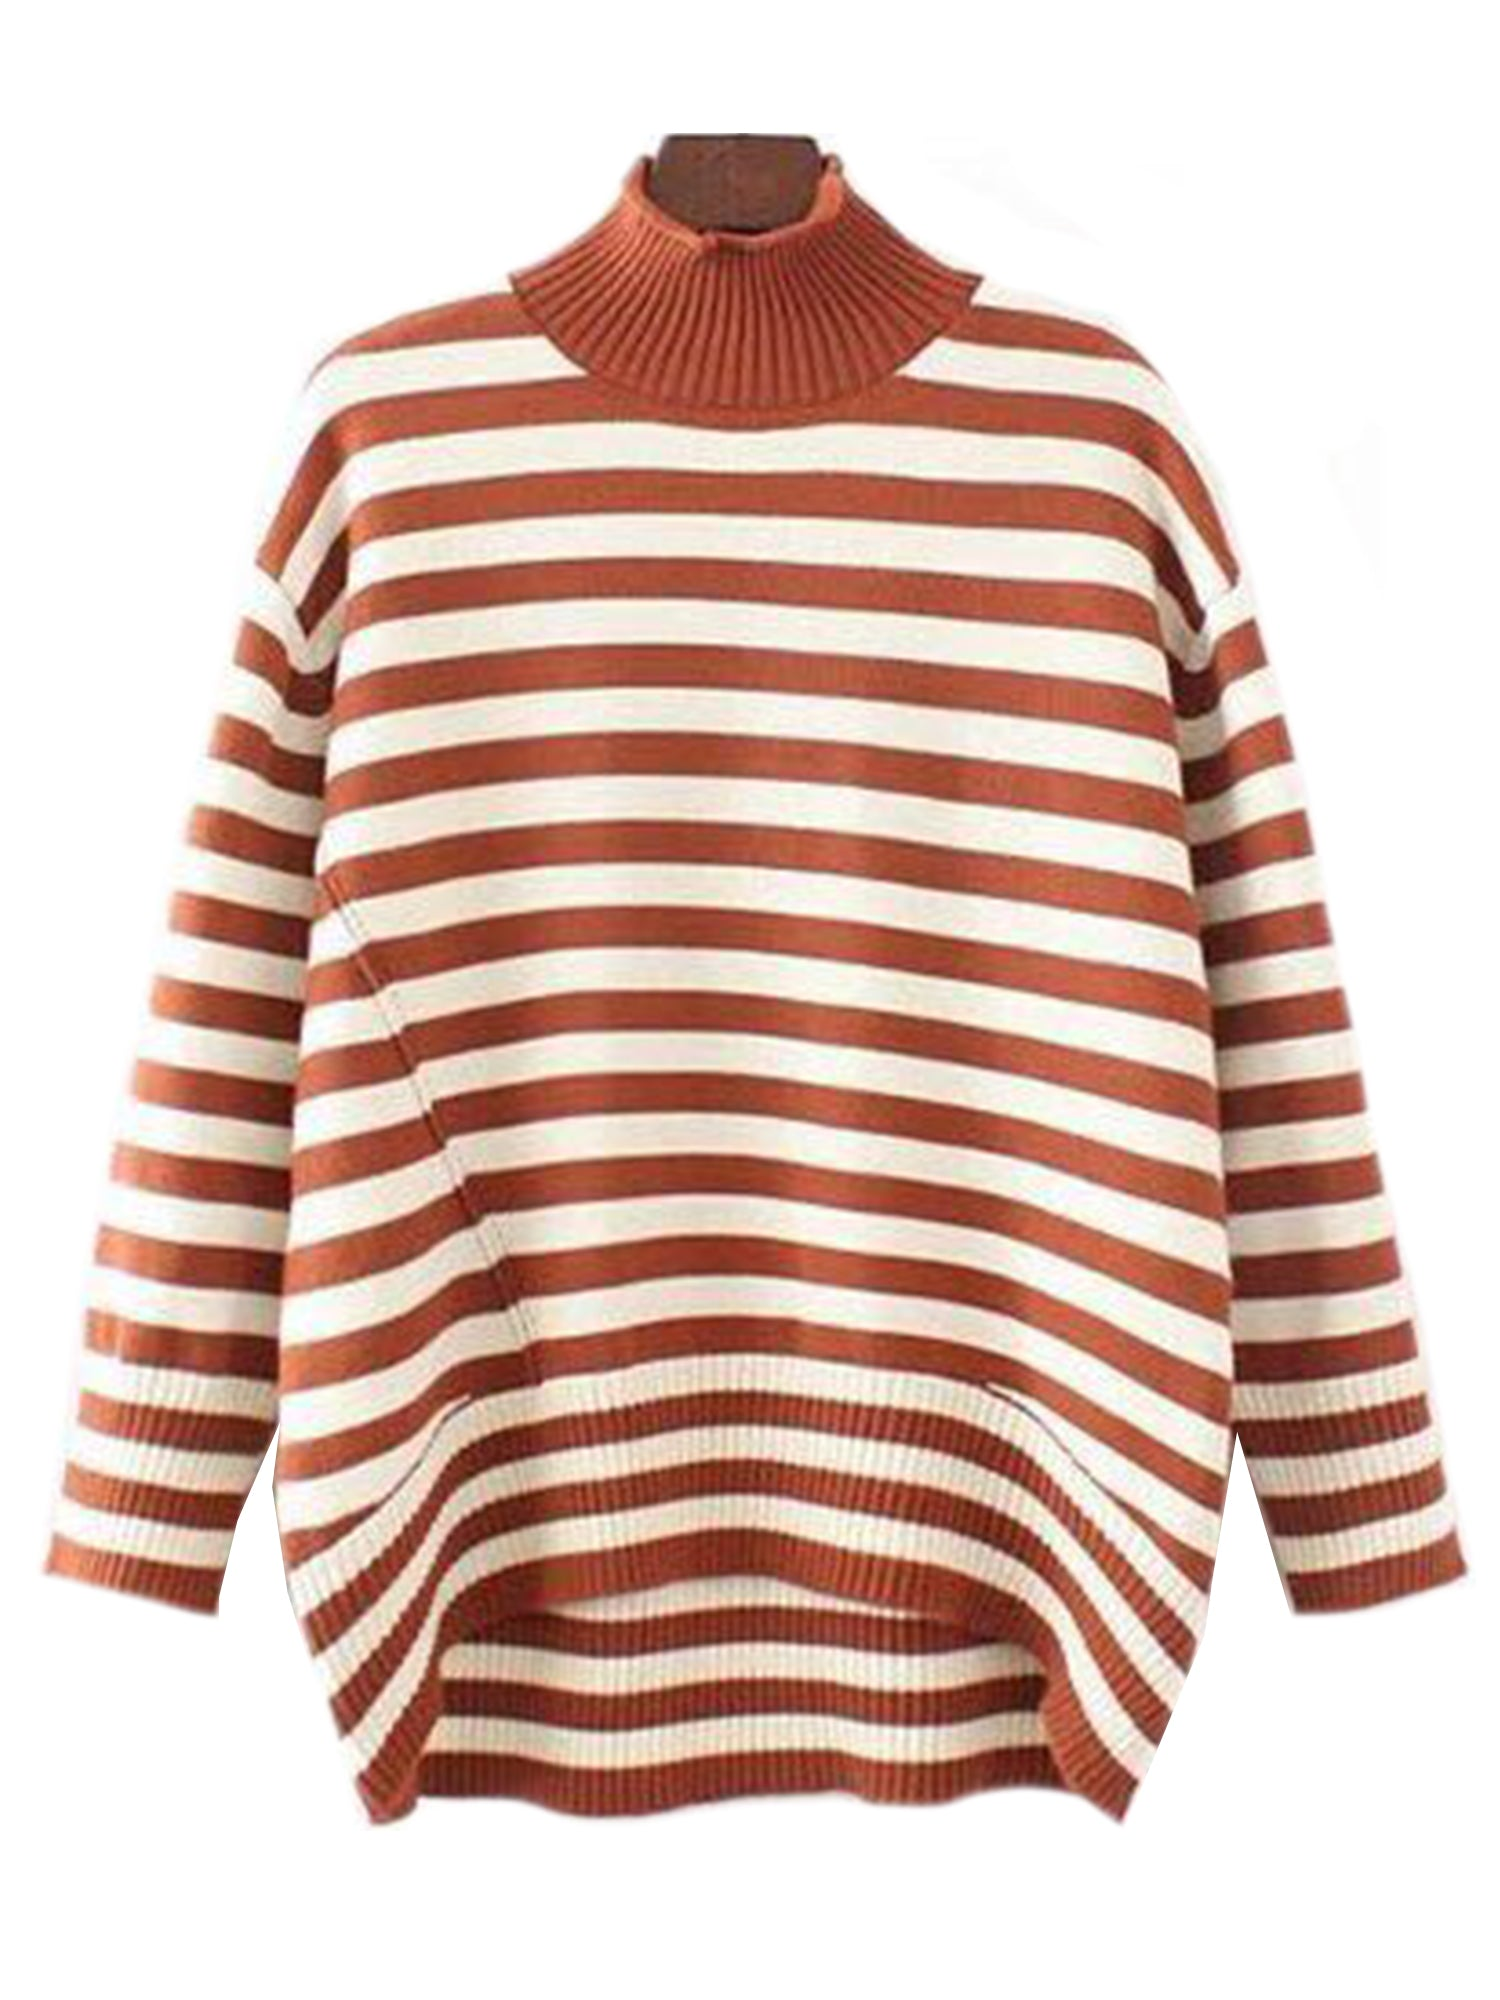 'Jennifer' High-neck Striped Sweater(3 Colors)